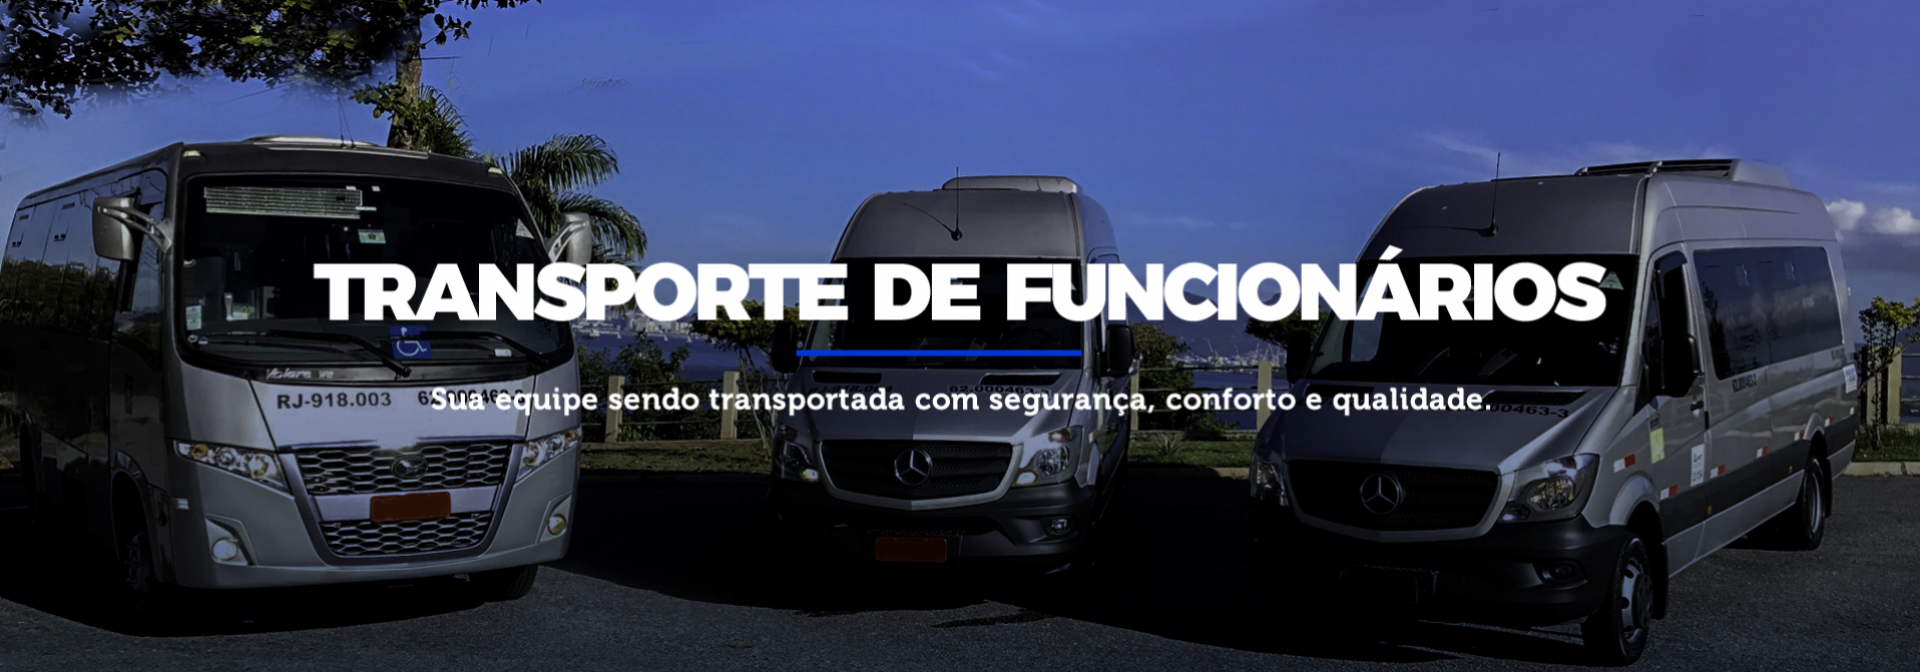 https://www.riovipcar.com.br/imagens/uploads/imgs/banners/1920x672/3.png